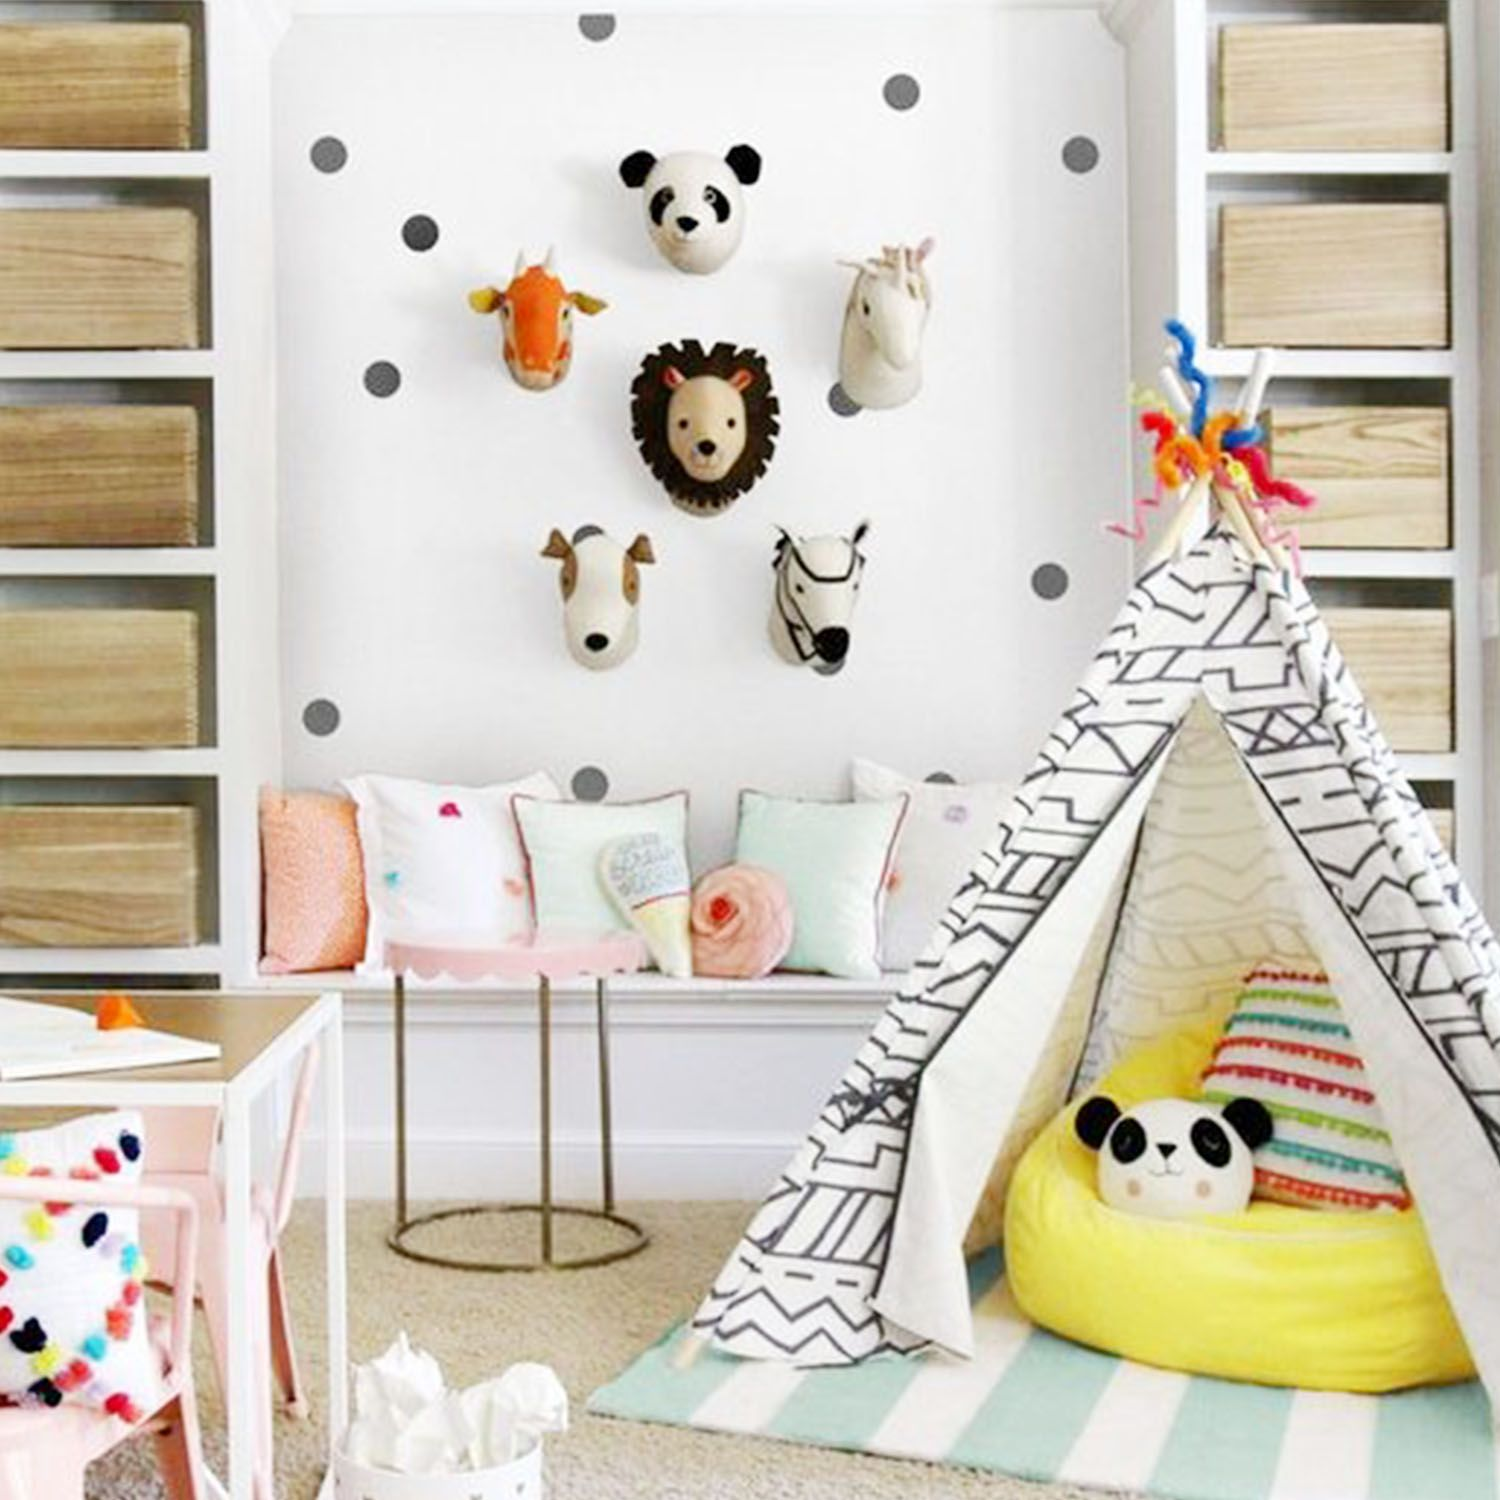 Habitación infantil safari con vinilo https://dolcevinilo.es/vinilo-topos #habitacion #habitaciones #infantil #infantiles #bebe #ideas #decoracion #pared #vinilo #vinilos #decorativos #vinilosdecorativos #habitacioninfantil #habitacionesinfantiles #habitacionbebe #habitacionesbebe #vinilosdecorativos #vinilosinfantiles #decoracioninfantil #decoracionbebe #niño #niños #niña #niñas  #safari #animales #blancoynegro #tipi #topos #confetti